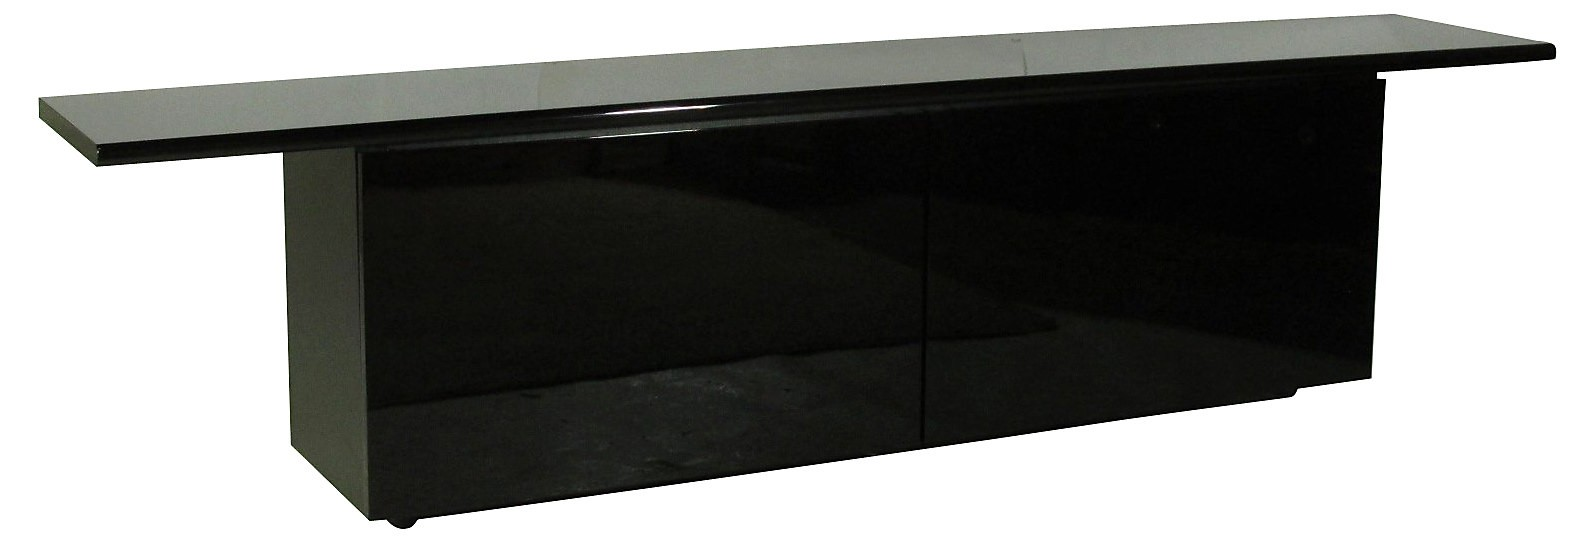 Italian Lacquer Sideboard